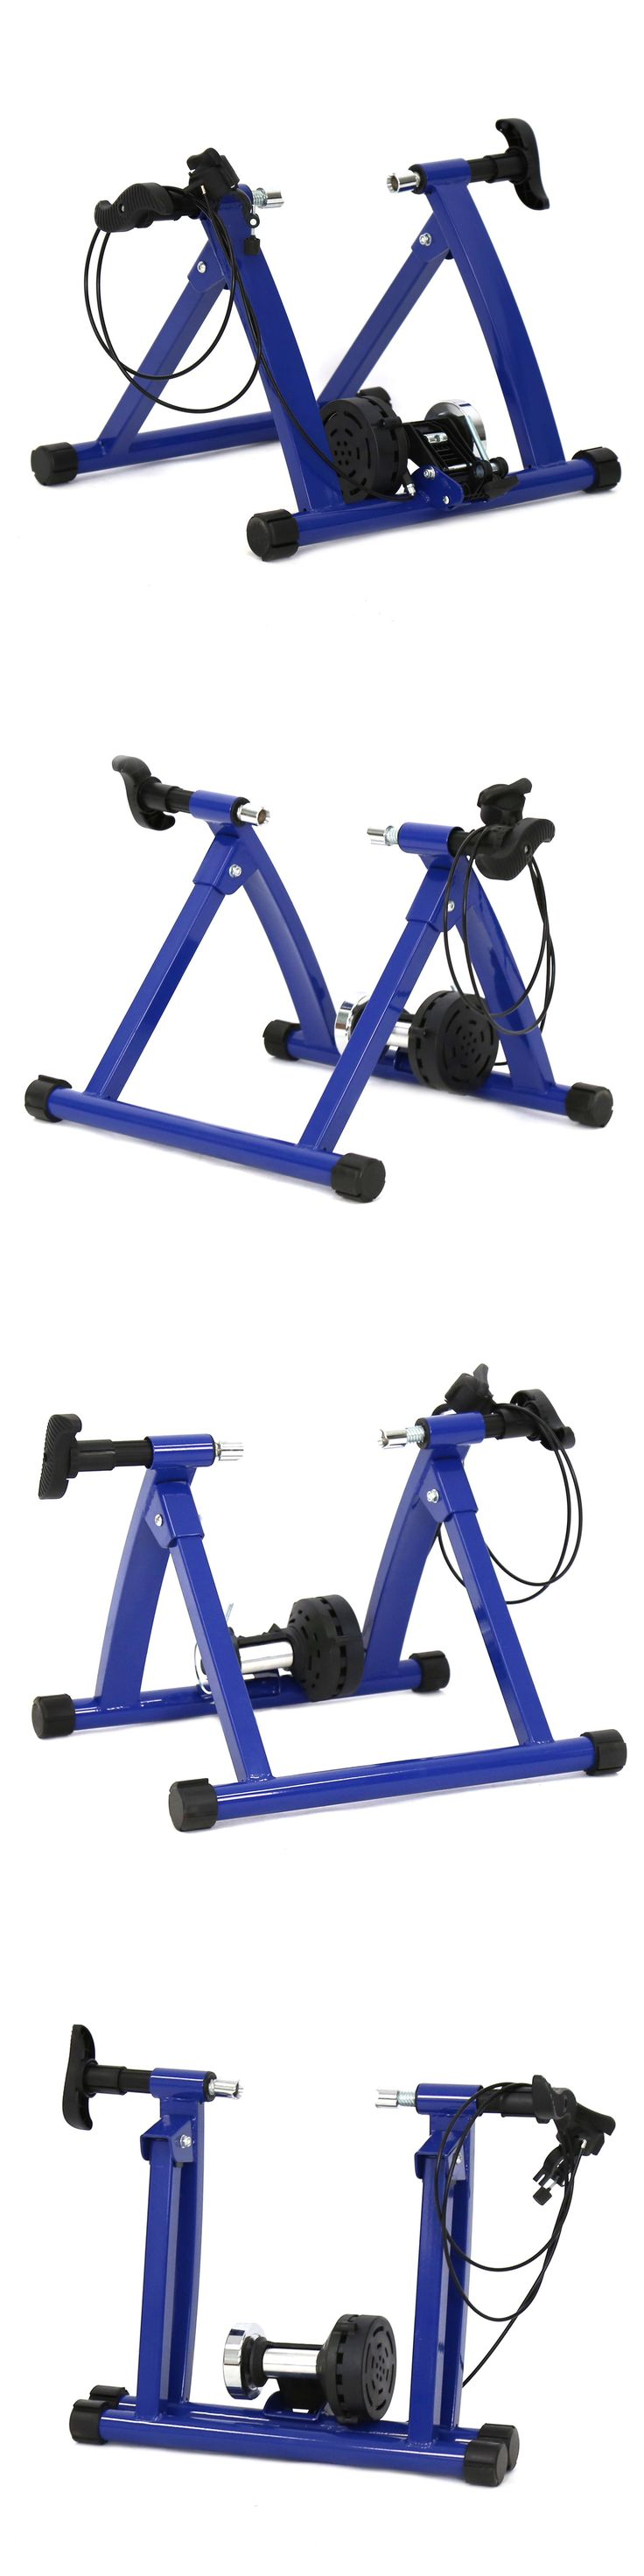 Trainers and Rollers 36141: Bicycle Cycling Trainer Indoor Exercise Adjustable 5 7 Magnetic Resistance -> BUY IT NOW ONLY: $65.99 on eBay!